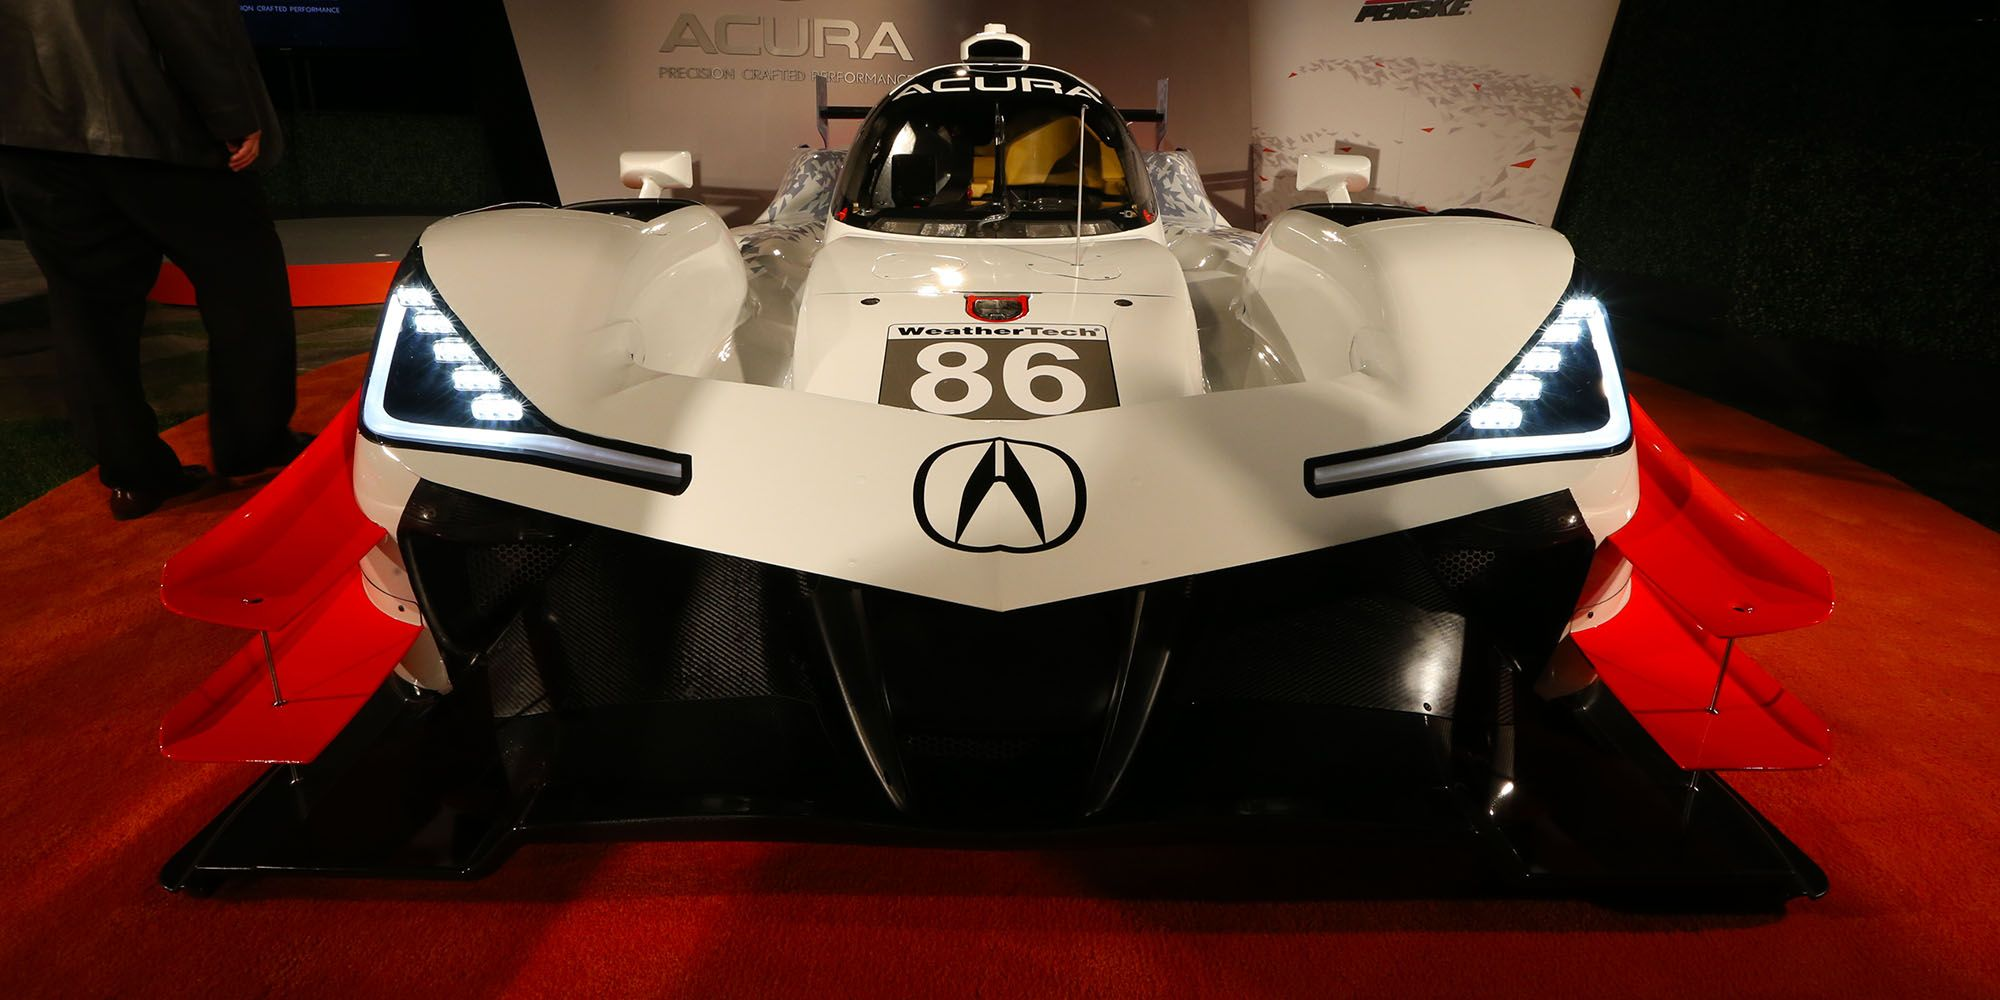 2018 acura dpi. simple acura this is the car acura and penske will use for their return to prototype  racing intended 2018 acura dpi